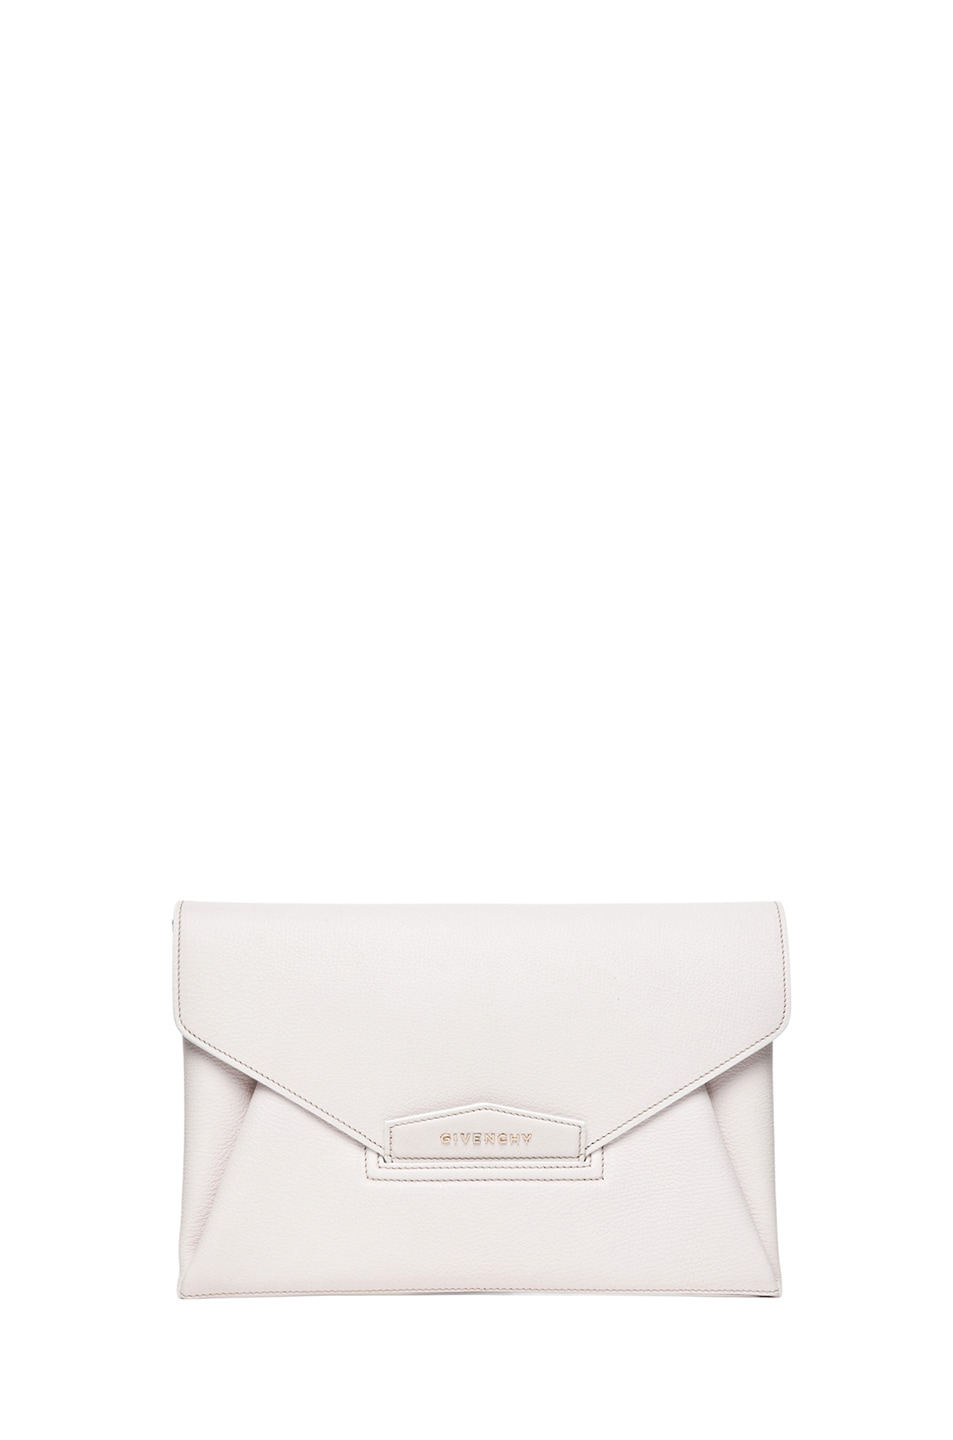 Image 1 of GIVENCHY Medium Antigona Envelope Clutch in Ivory